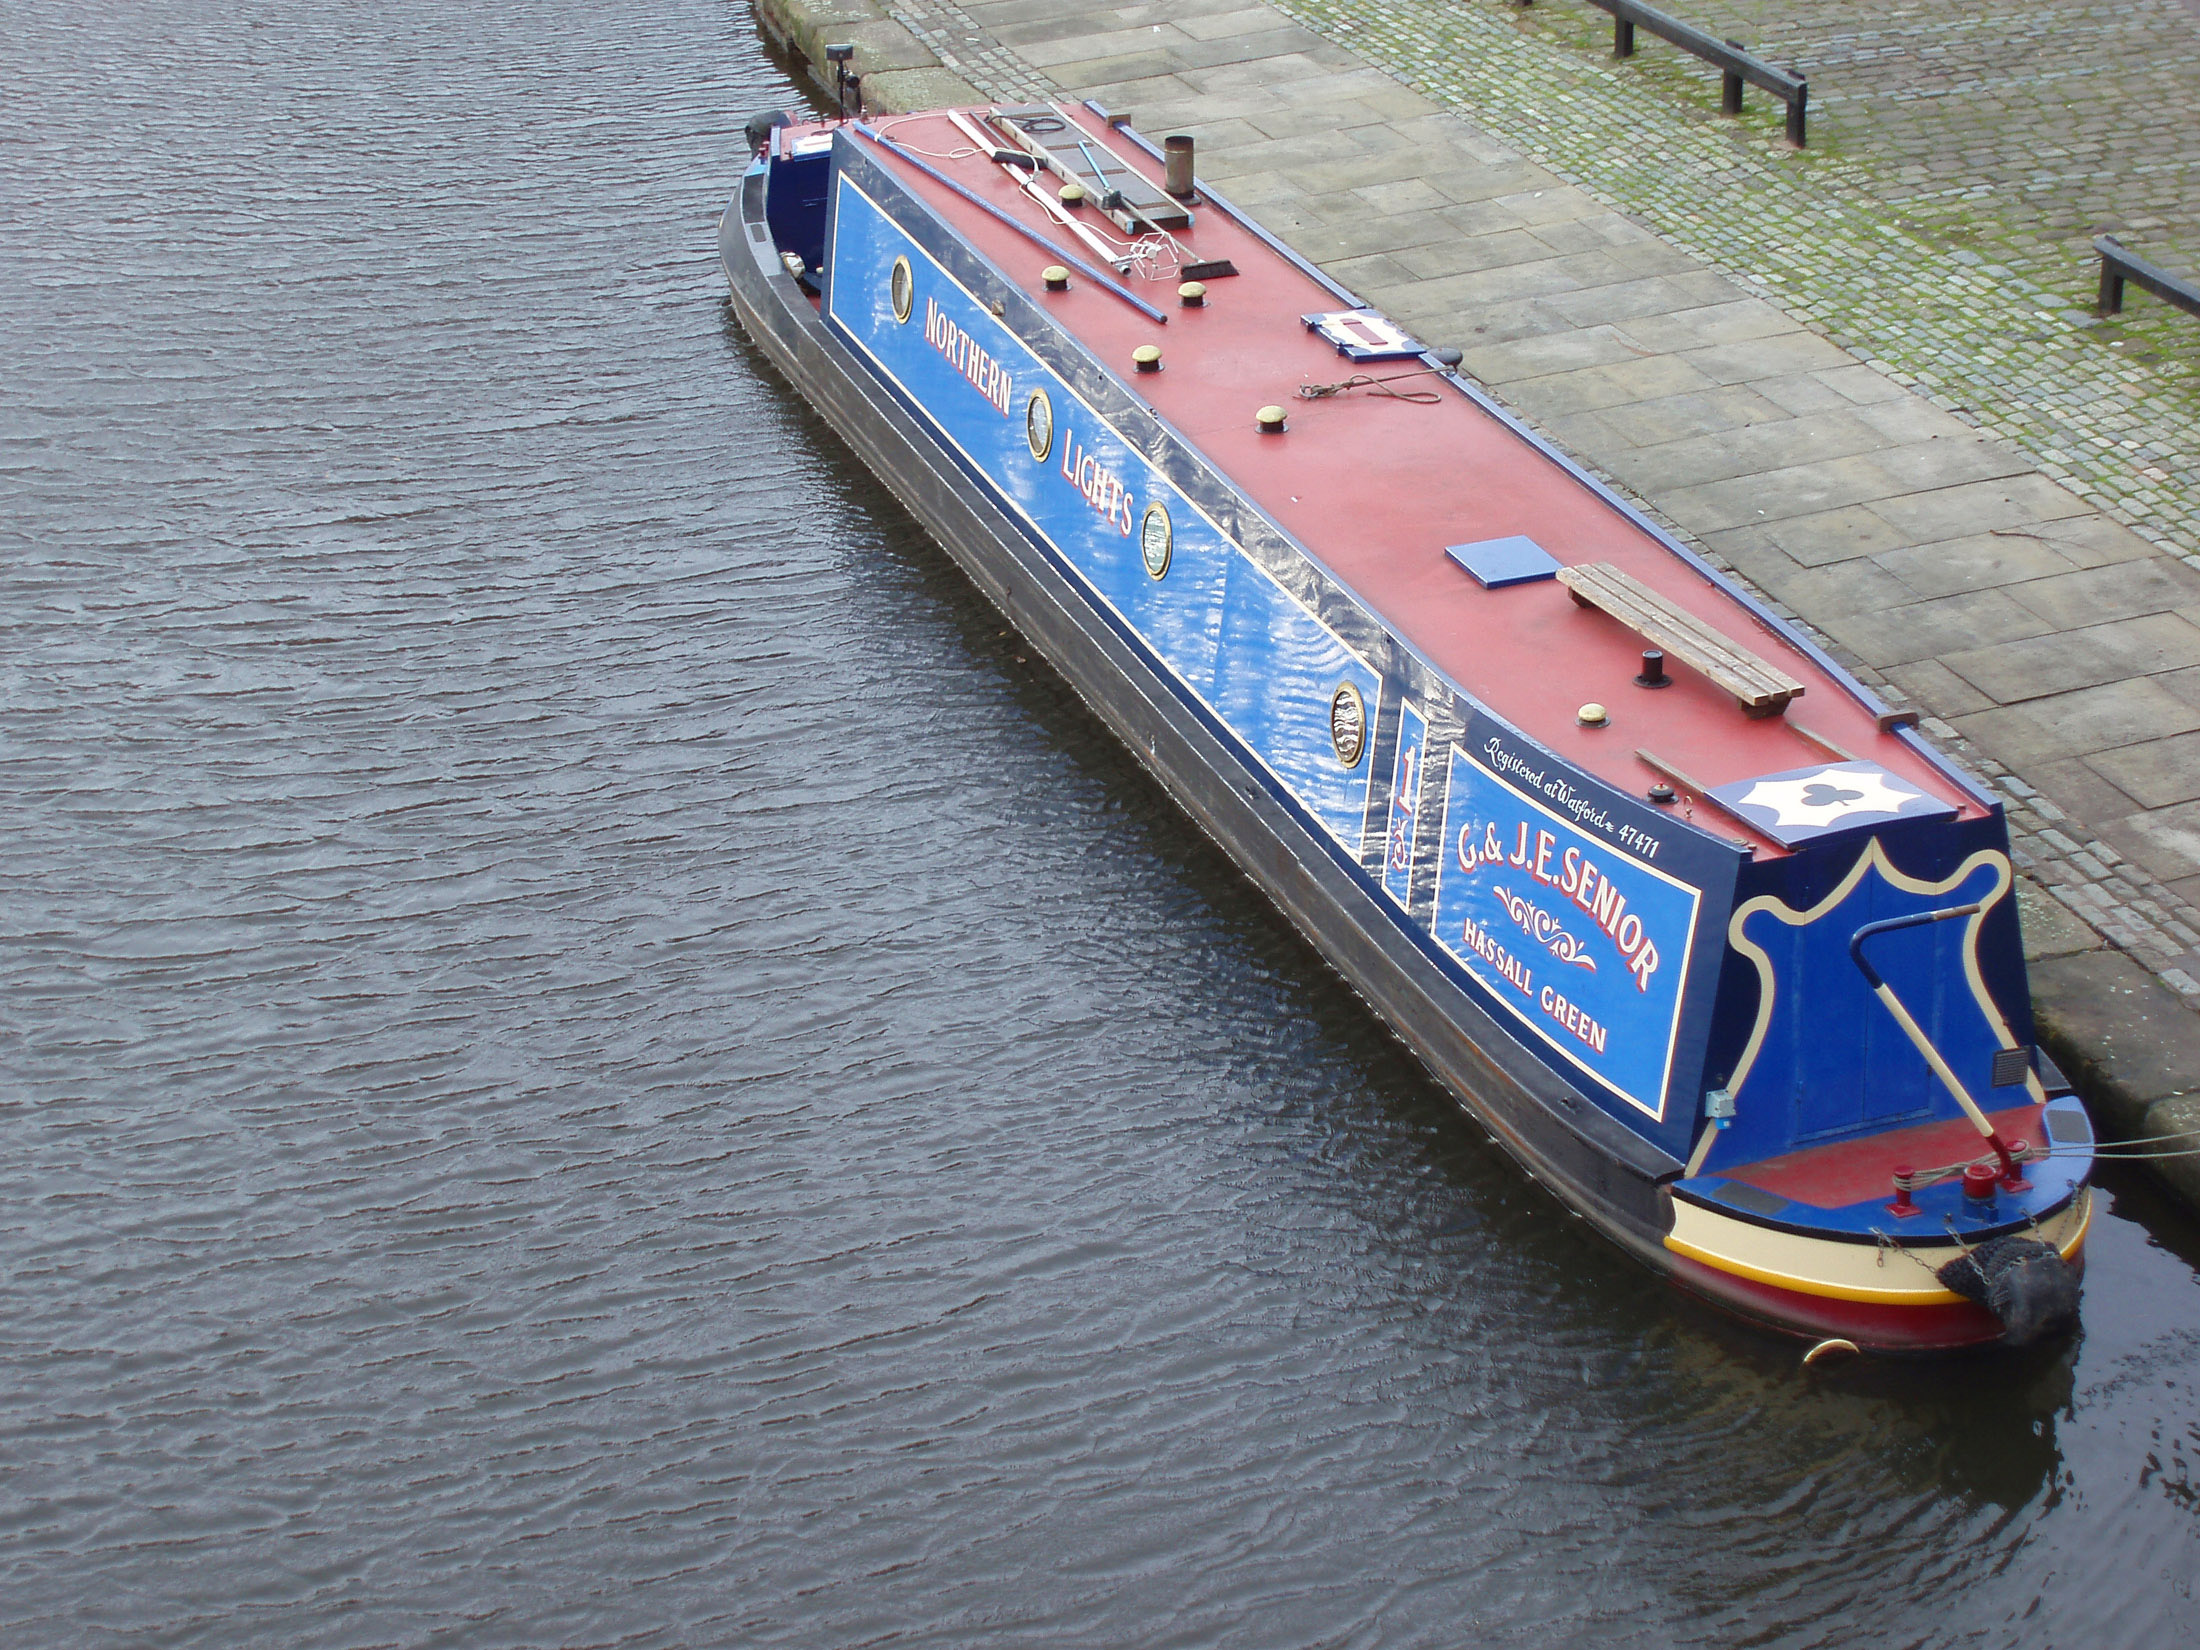 High angle view of a traditional English canal narrow boat with advertising signs on the side moored at the side of the canal alongside a paved walkway